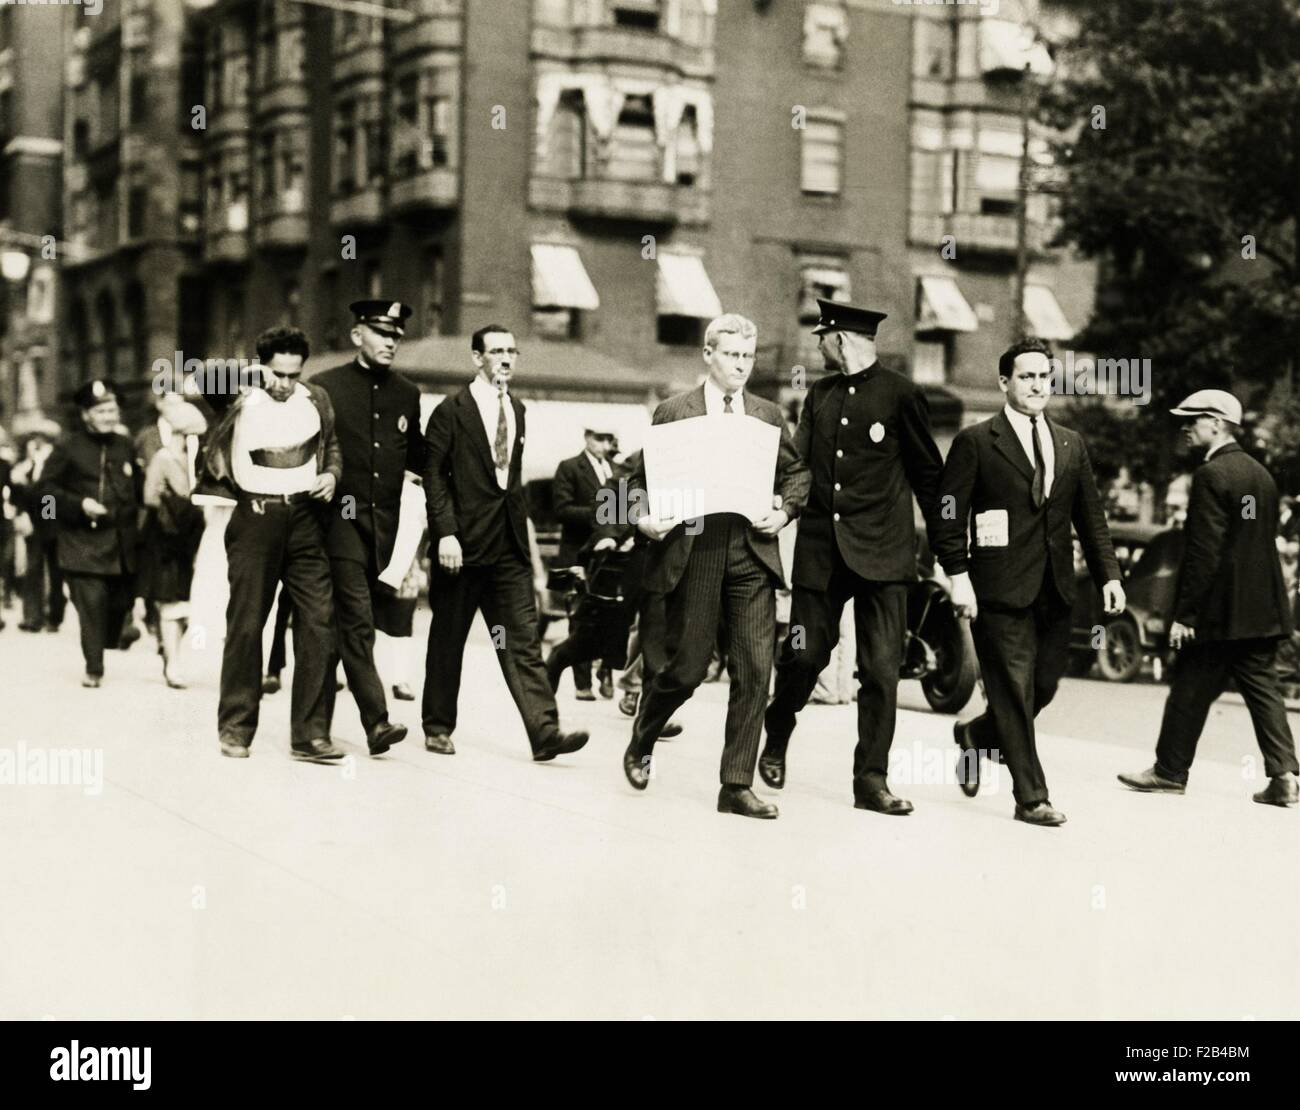 Socialists arrested in Boston, Mass. Harry Canter of N.Y. (left) and Alfred Baker Lewis of Boston, both Socialists, - Stock Image